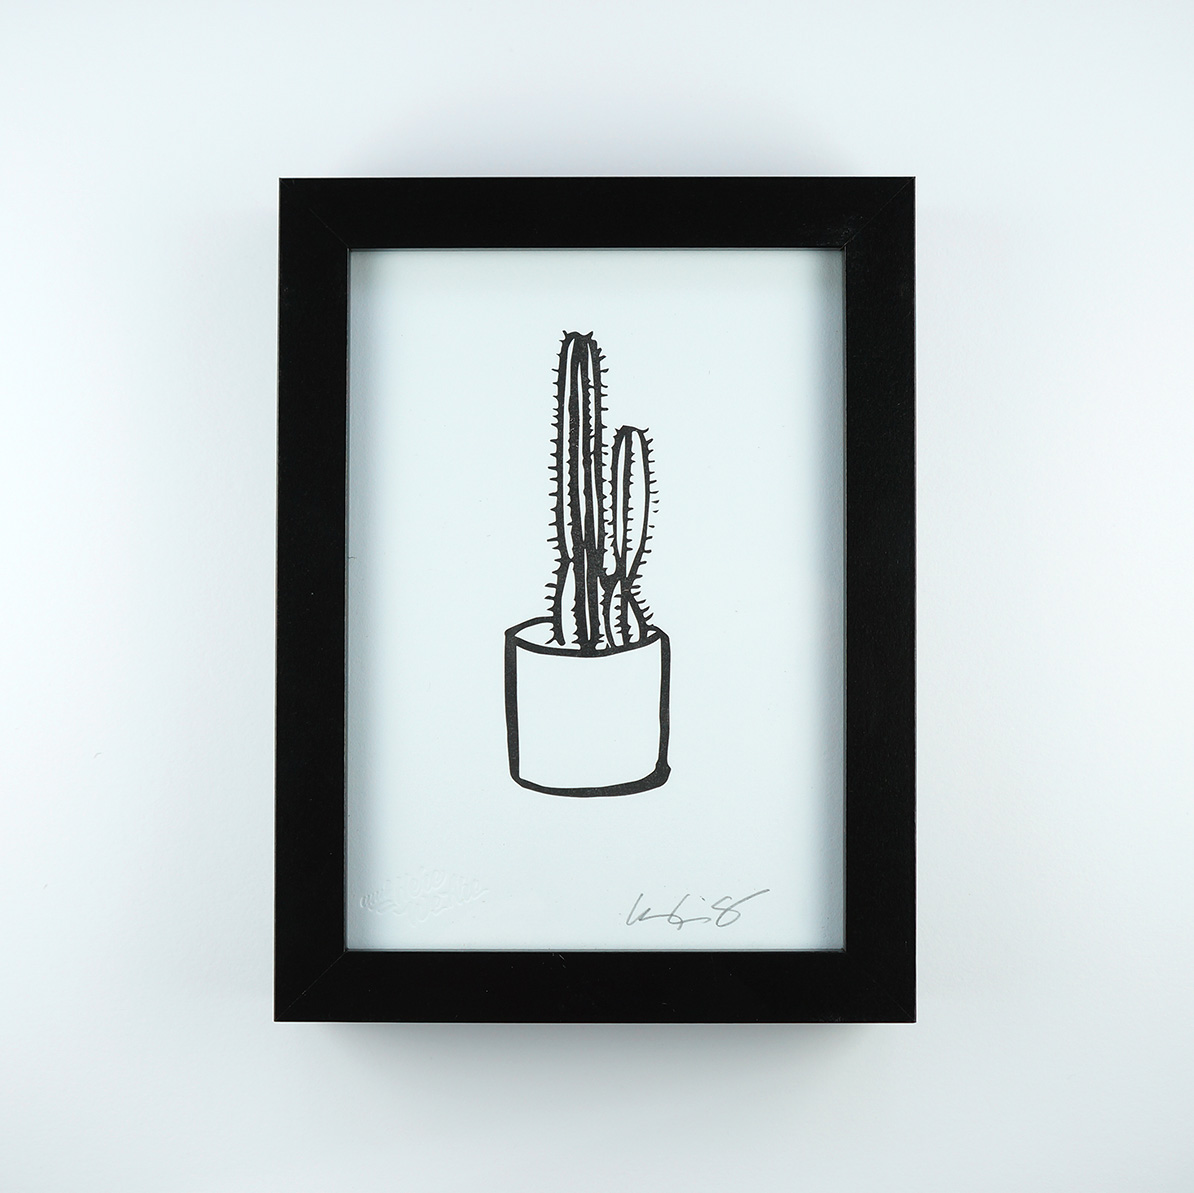 drawn illustrated cat art cactus black and white brush pen pen and ink